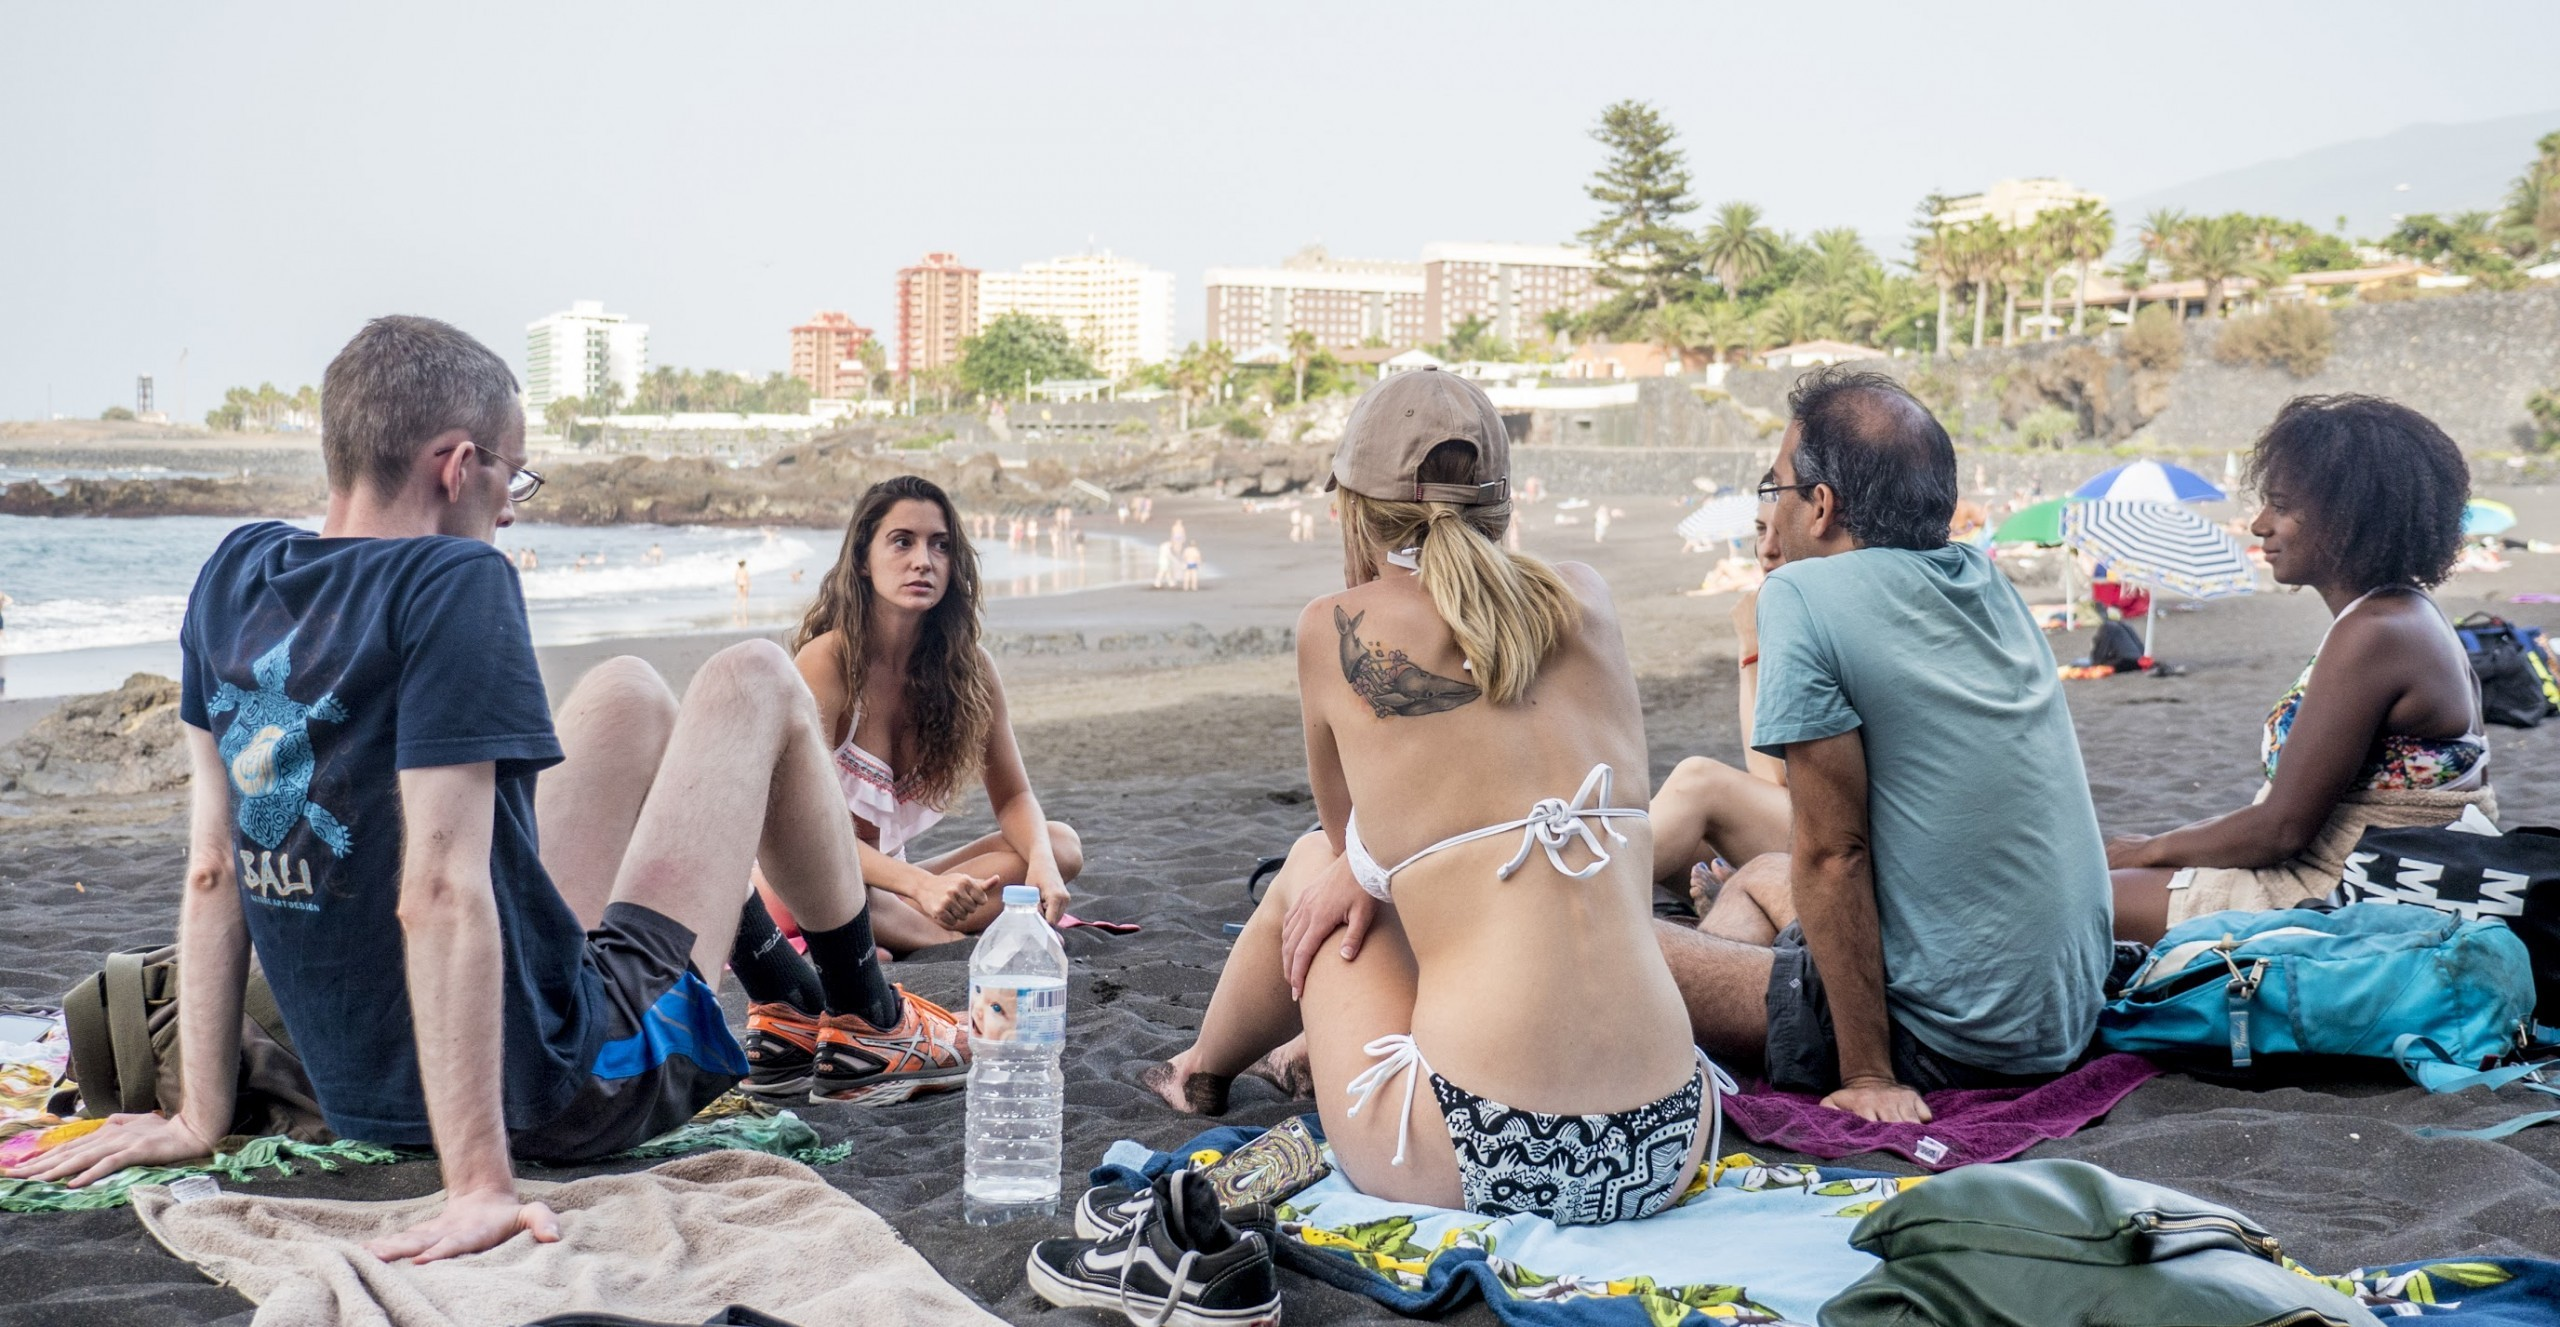 Beach meetings can boost team spirit & spark creativity especially after the productivity plunge due to the COVID-19